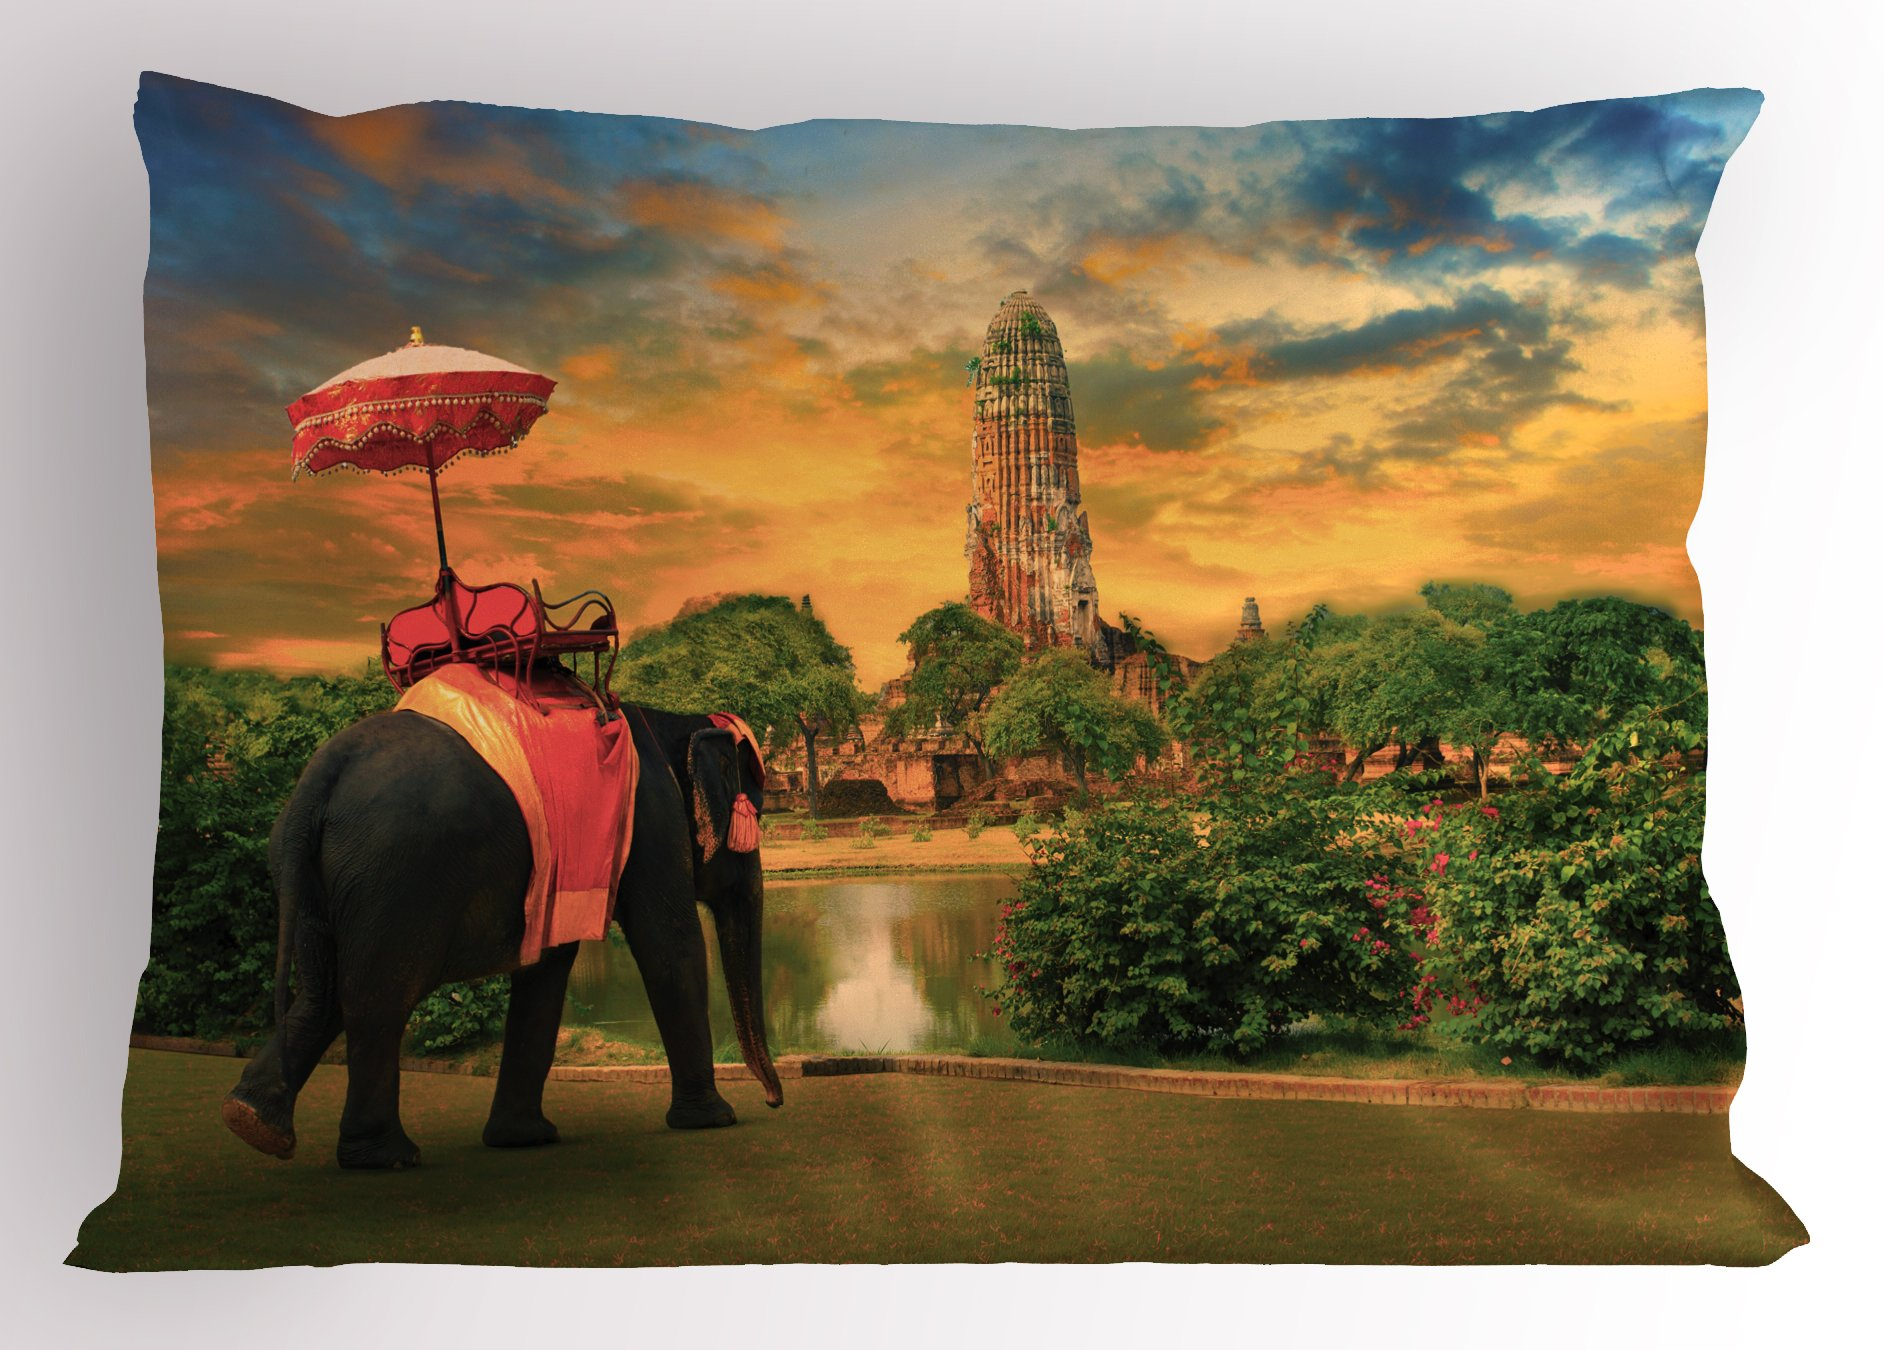 Ambesonne Elephant Pillow Sham, Elephant Dressing with Thai Kingdom Tradition Accessories Pagoda in Ayuthaya, Decorative Standard King Size Printed Pillowcase, 36 X 20 Inches, Green Marigold by Ambesonne